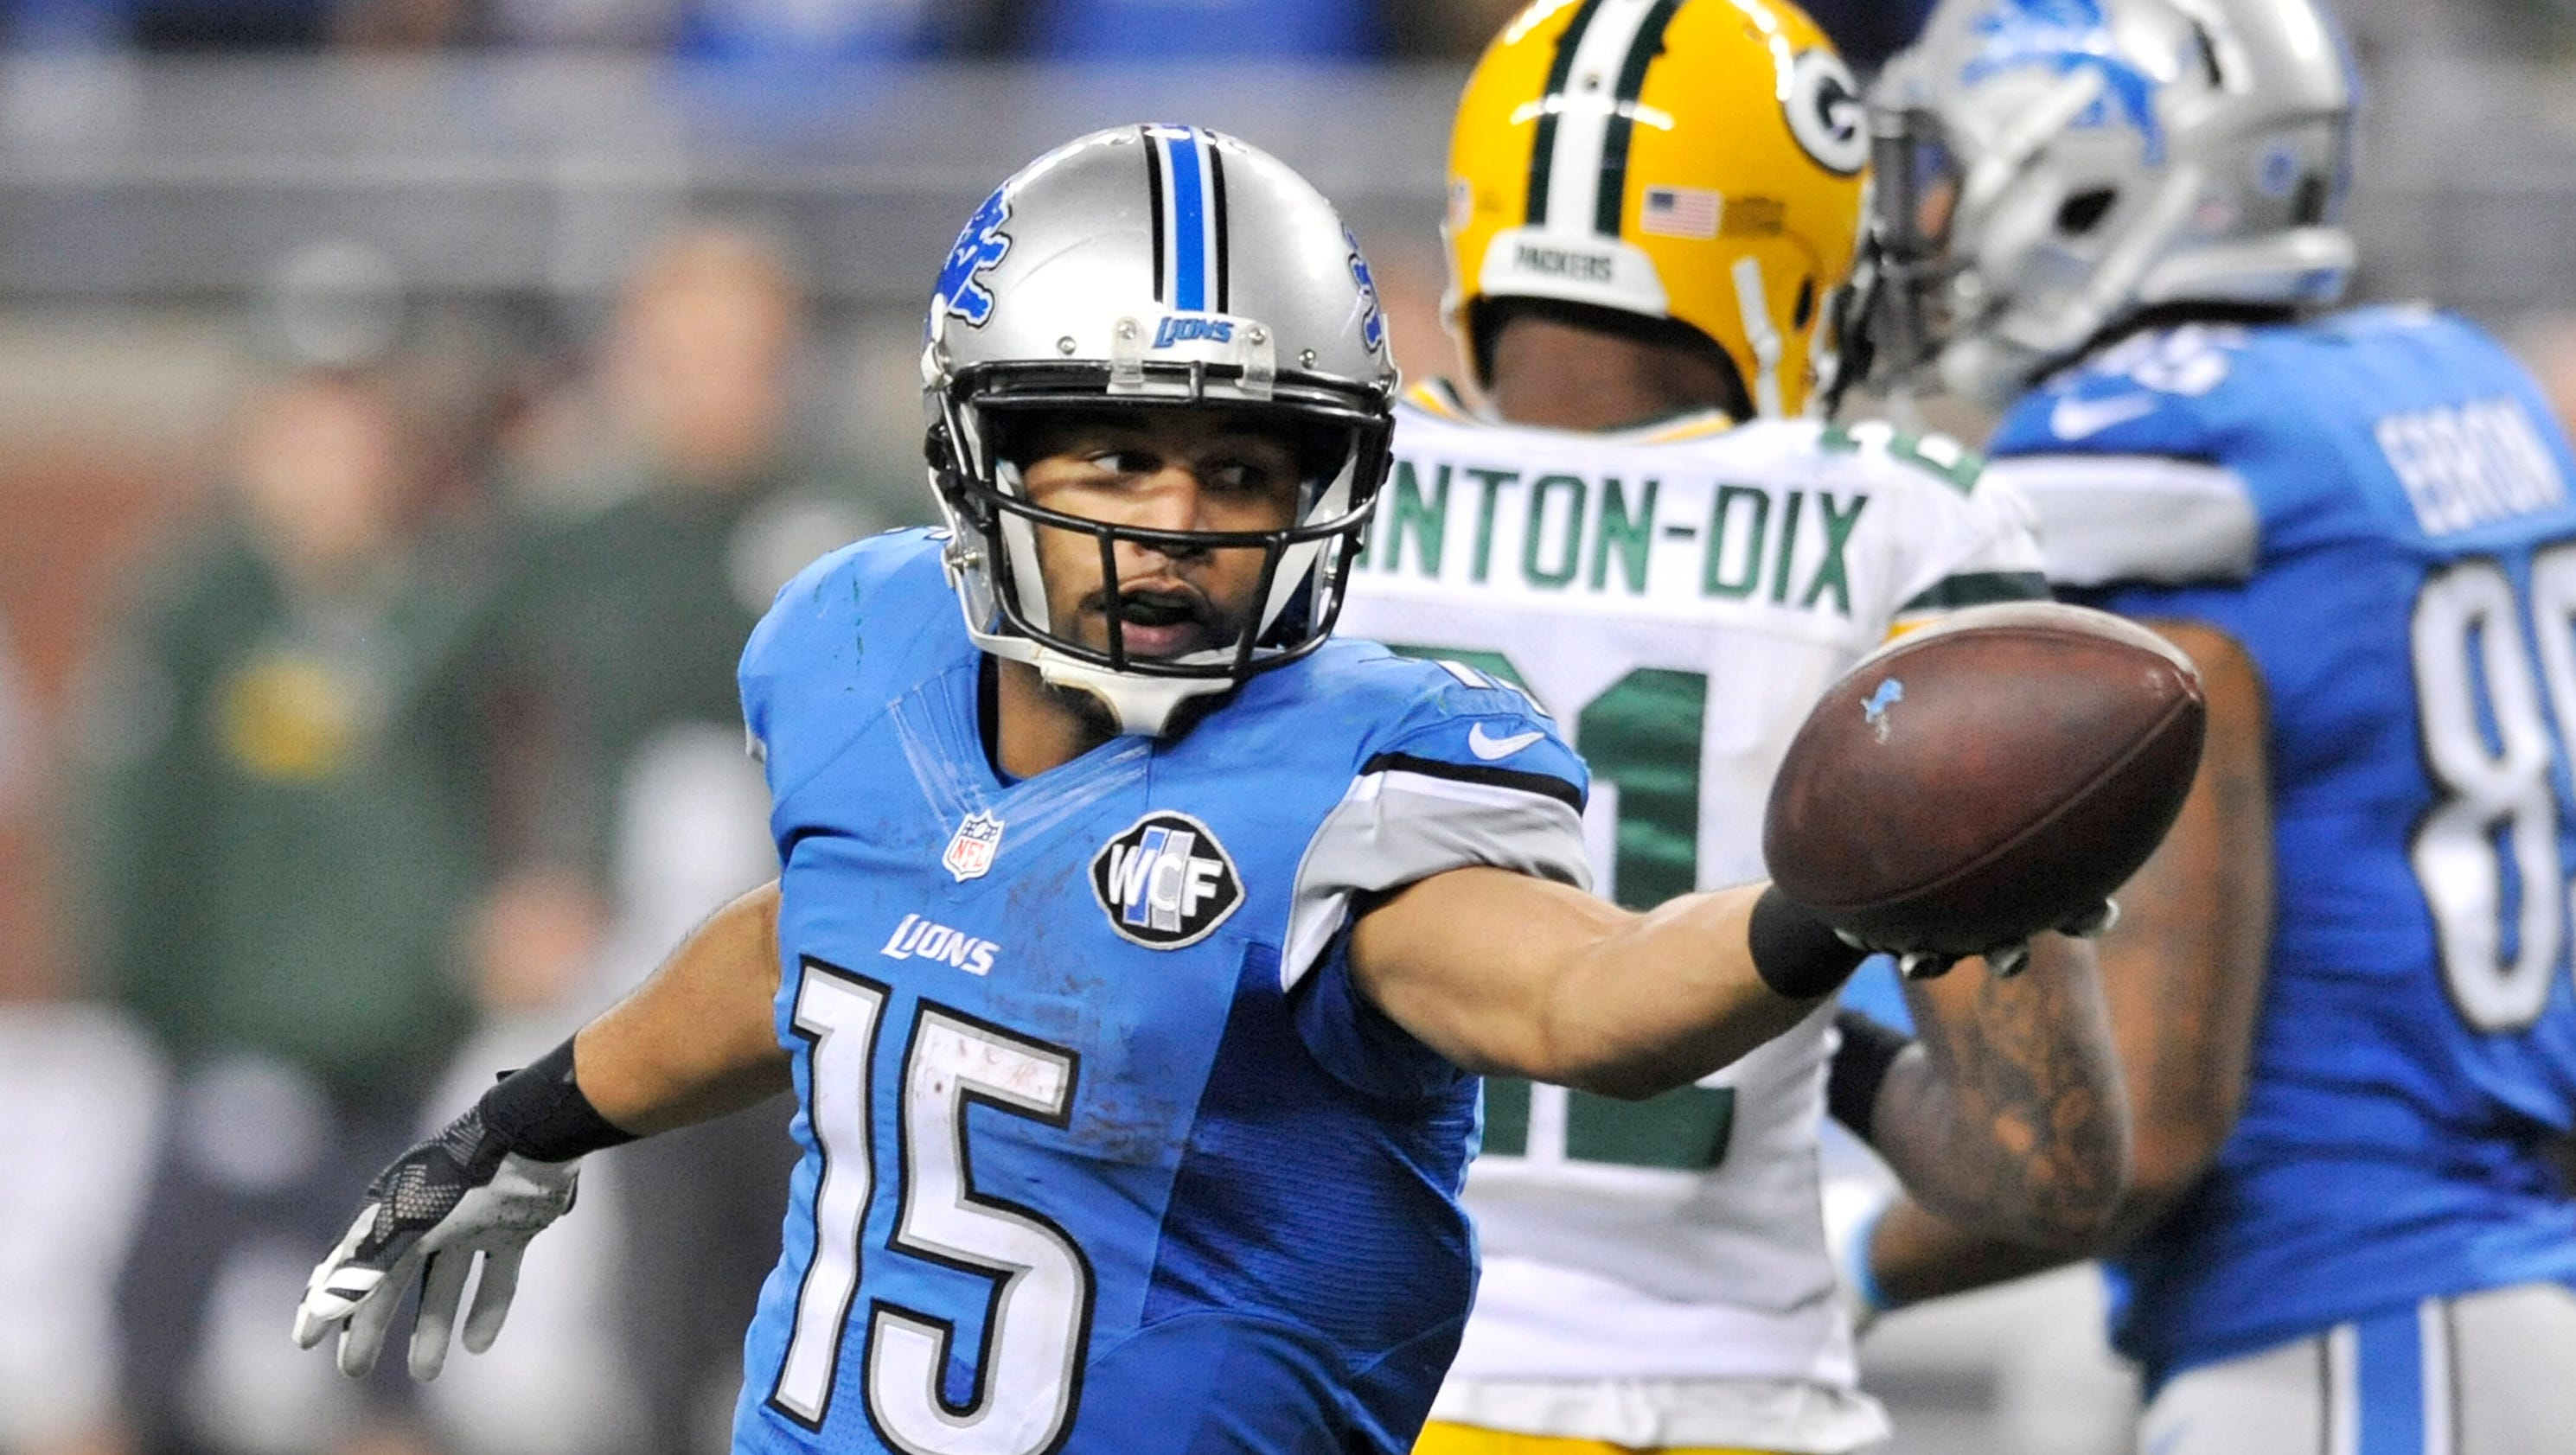 636087842207539824-2015-1203-rb-lions-packers1303